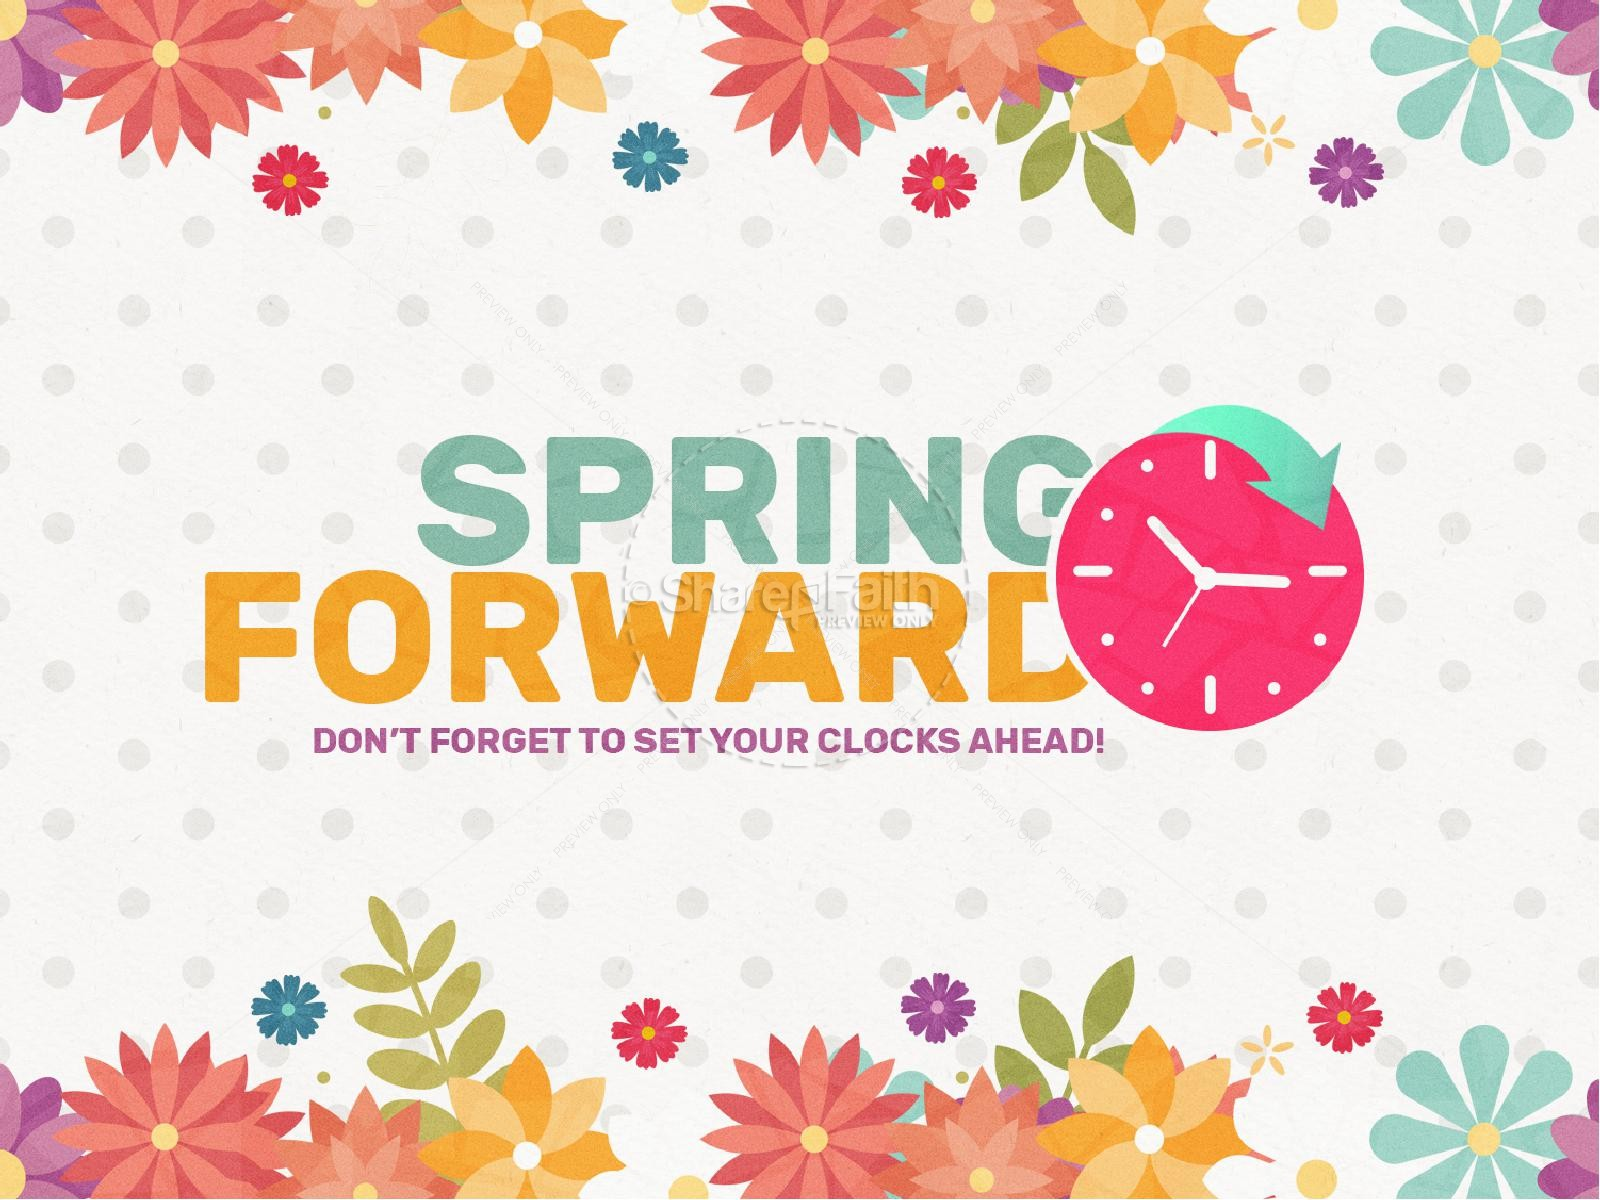 Daylight savings time clipart spring forward freeuse download Daylight Saving Time Spring Forward Goodbye Video | Church Motion ... freeuse download